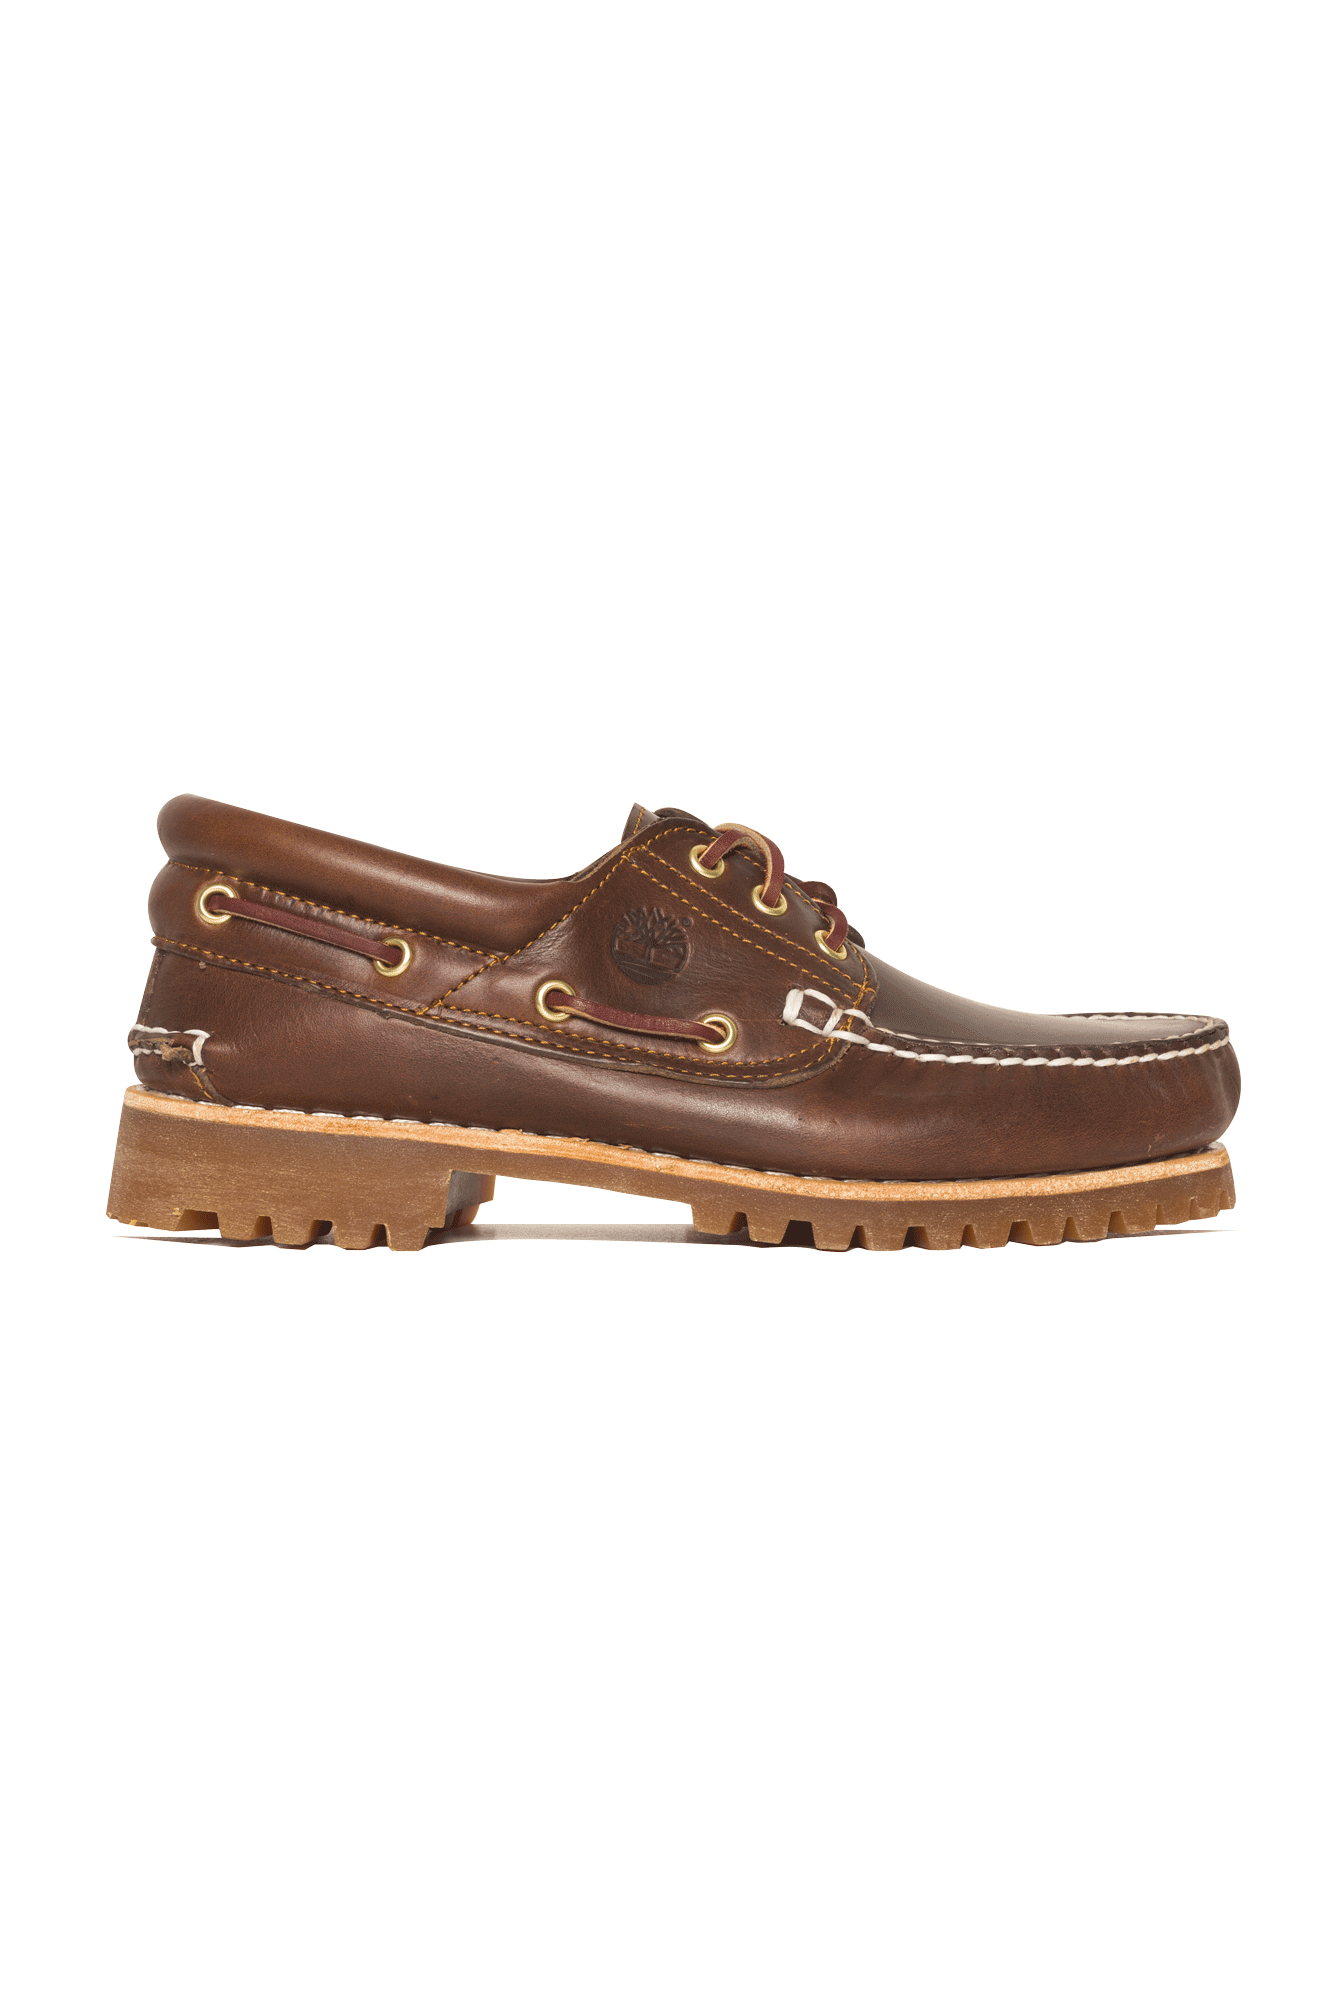 Timberland Stivali Authentics 3 Eye Classic Marrone 30003#000#C0003#6 - One Block Down